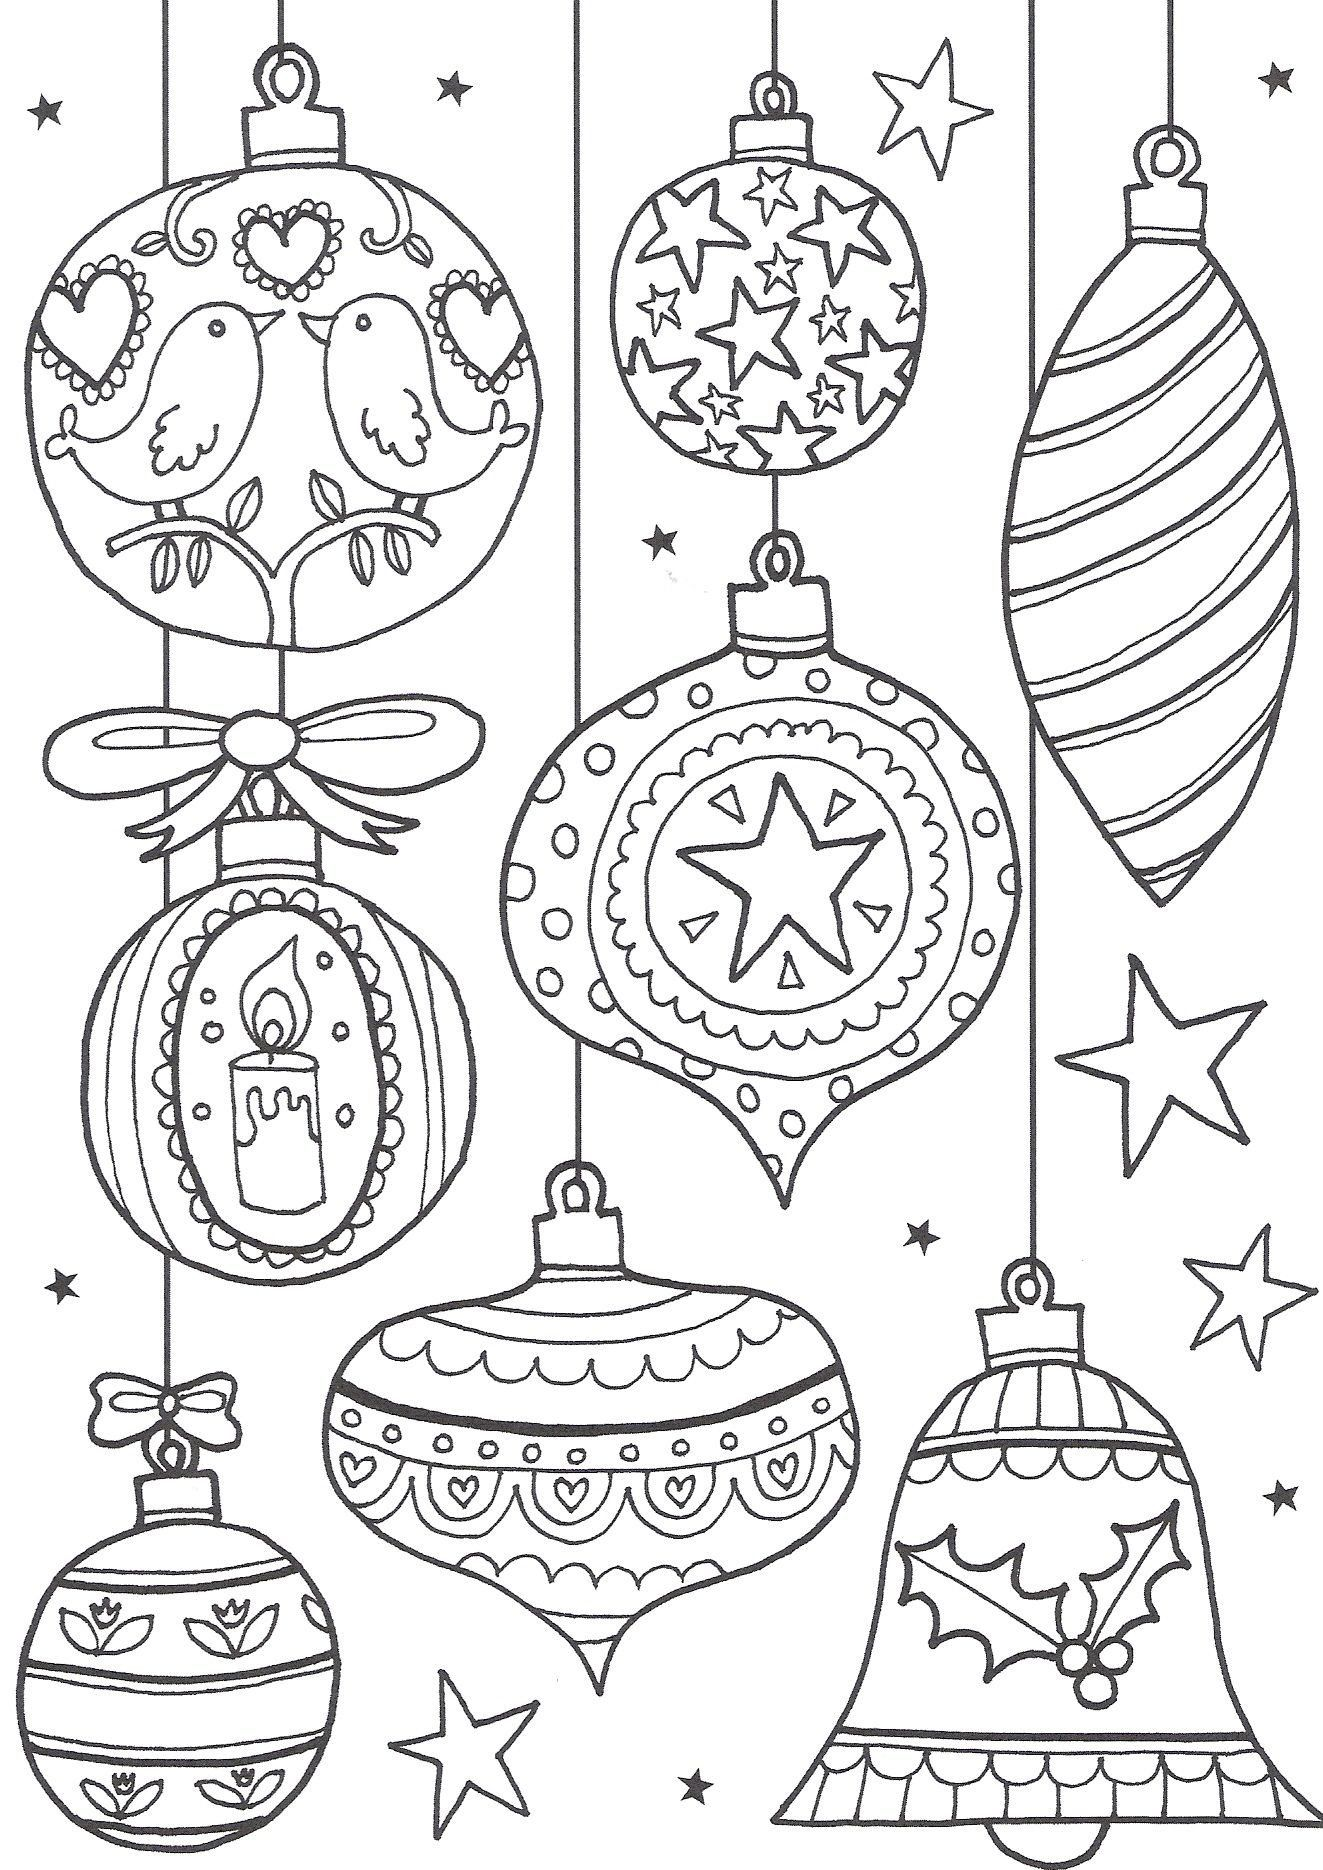 Free Printable Christmas Coloring Pages The Ultimate Roundup Of In 2020 Free Christmas Coloring Pages Printable Christmas Coloring Pages Christmas Coloring Printables